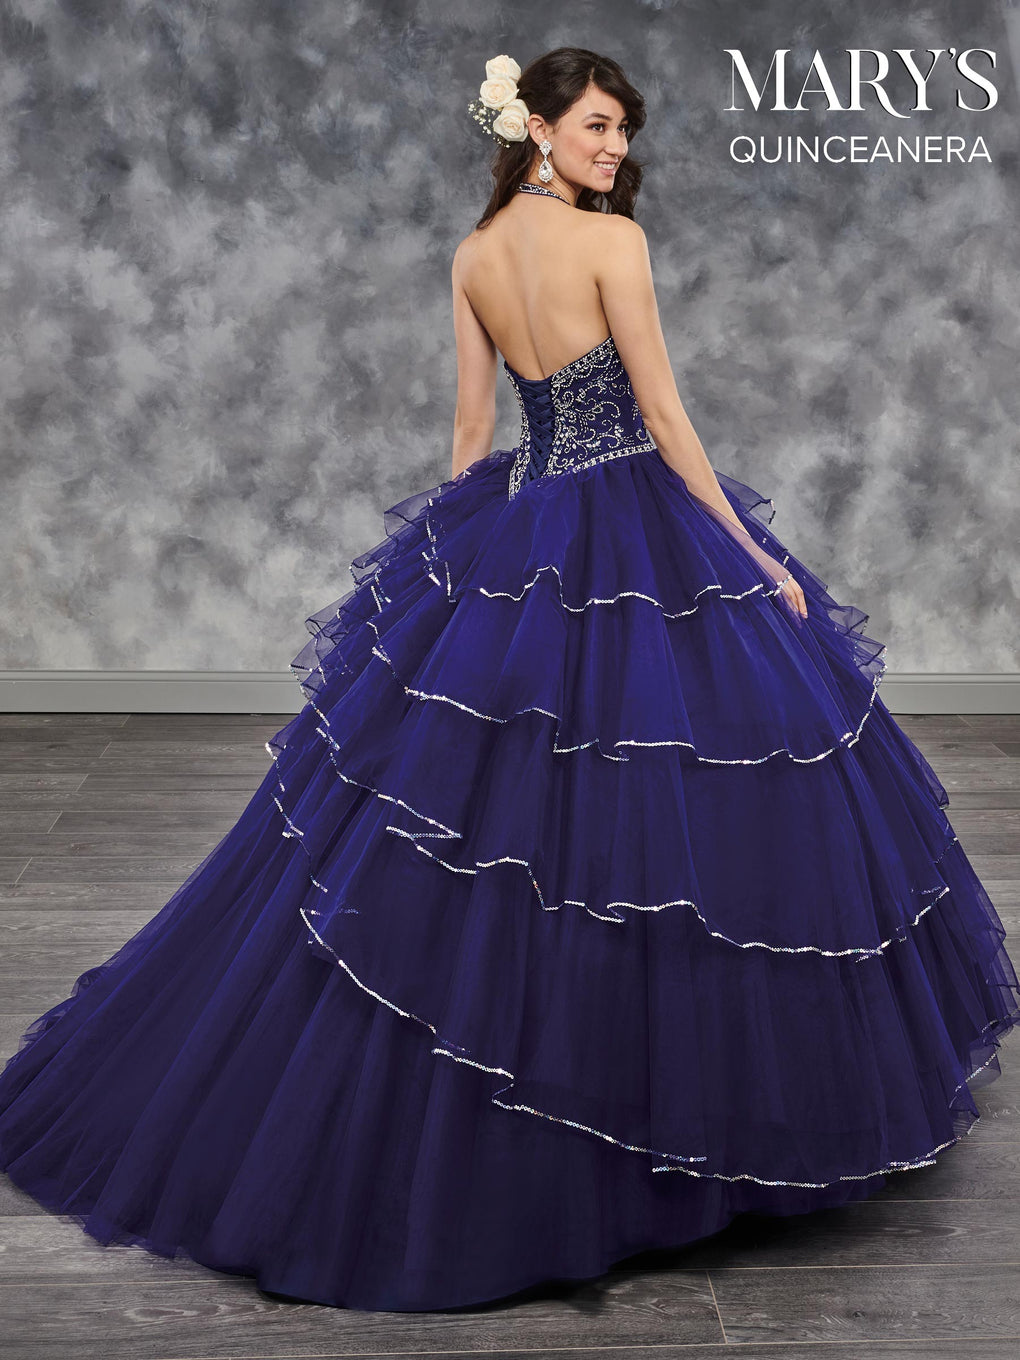 Marys Quinceanera Dresses in Blush, Burgundy, Indigo, or White Color